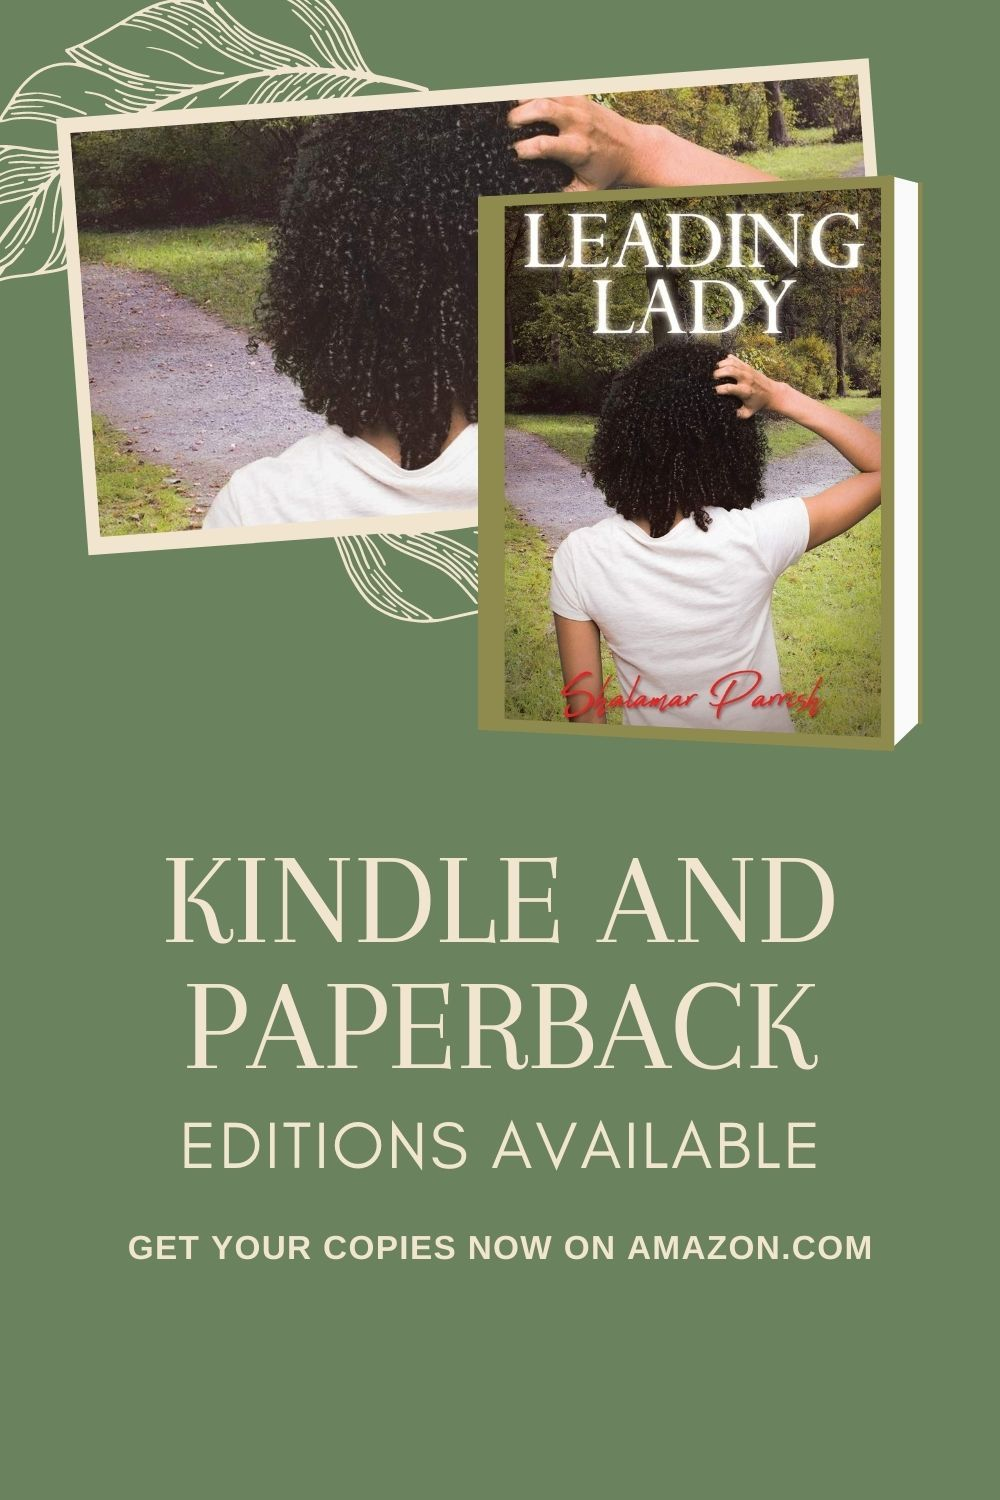 In This Novel A Single Mother Works Hard To Take Care Of Her Family In The Best Way She Knows How But The Life S Kindle Reading Book Club Books Fiction Which app is best for reading novels